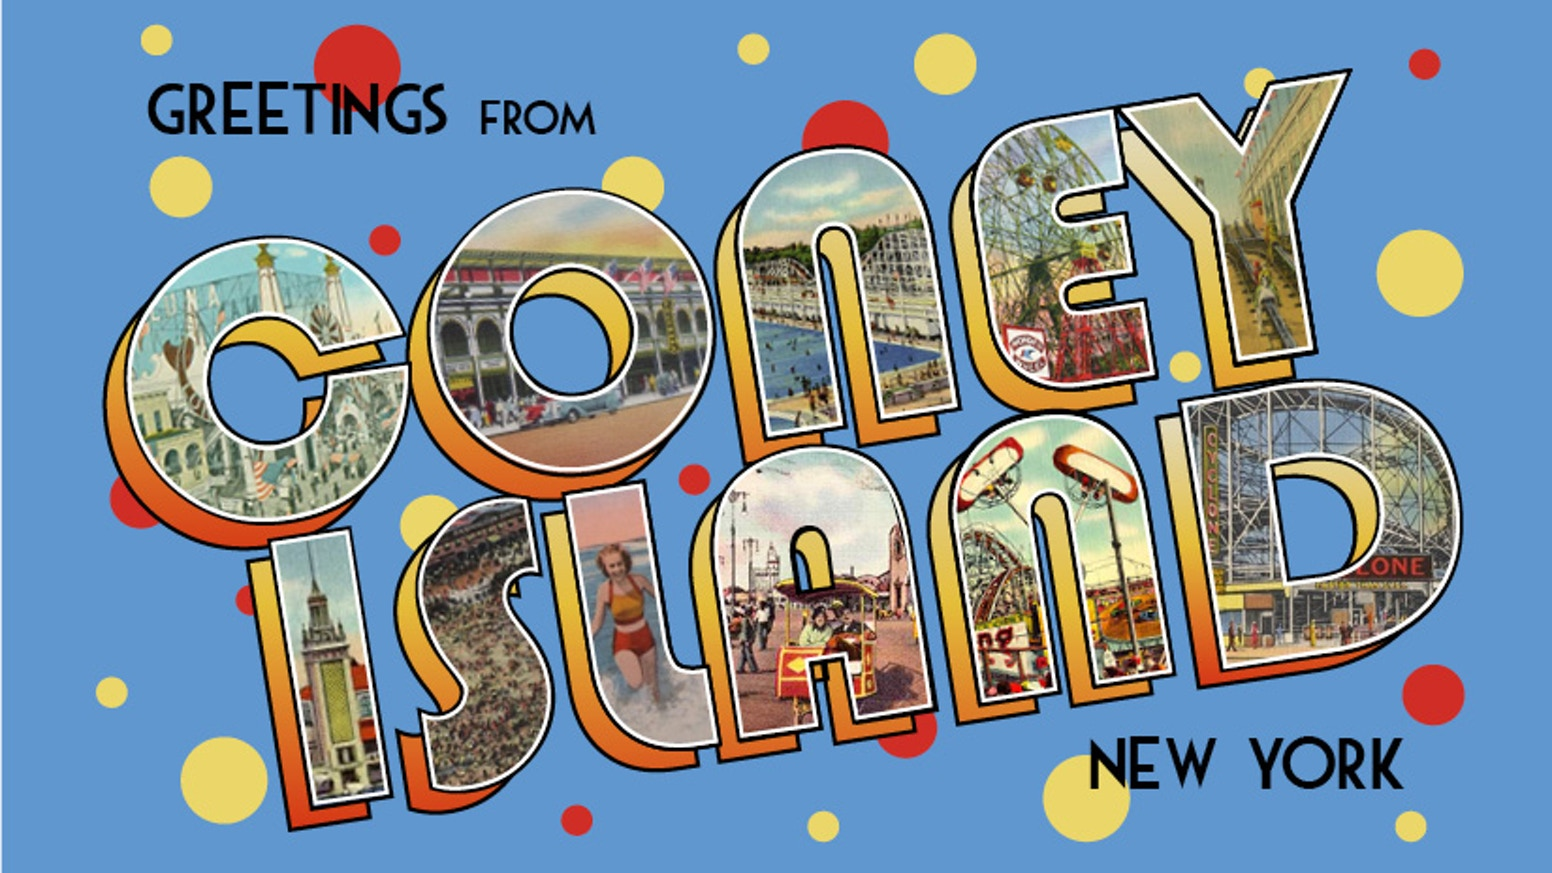 Greetings from coney island a story told via your mailbox by gyda greetings from coney island a story told via your mailbox kristyandbryce Images